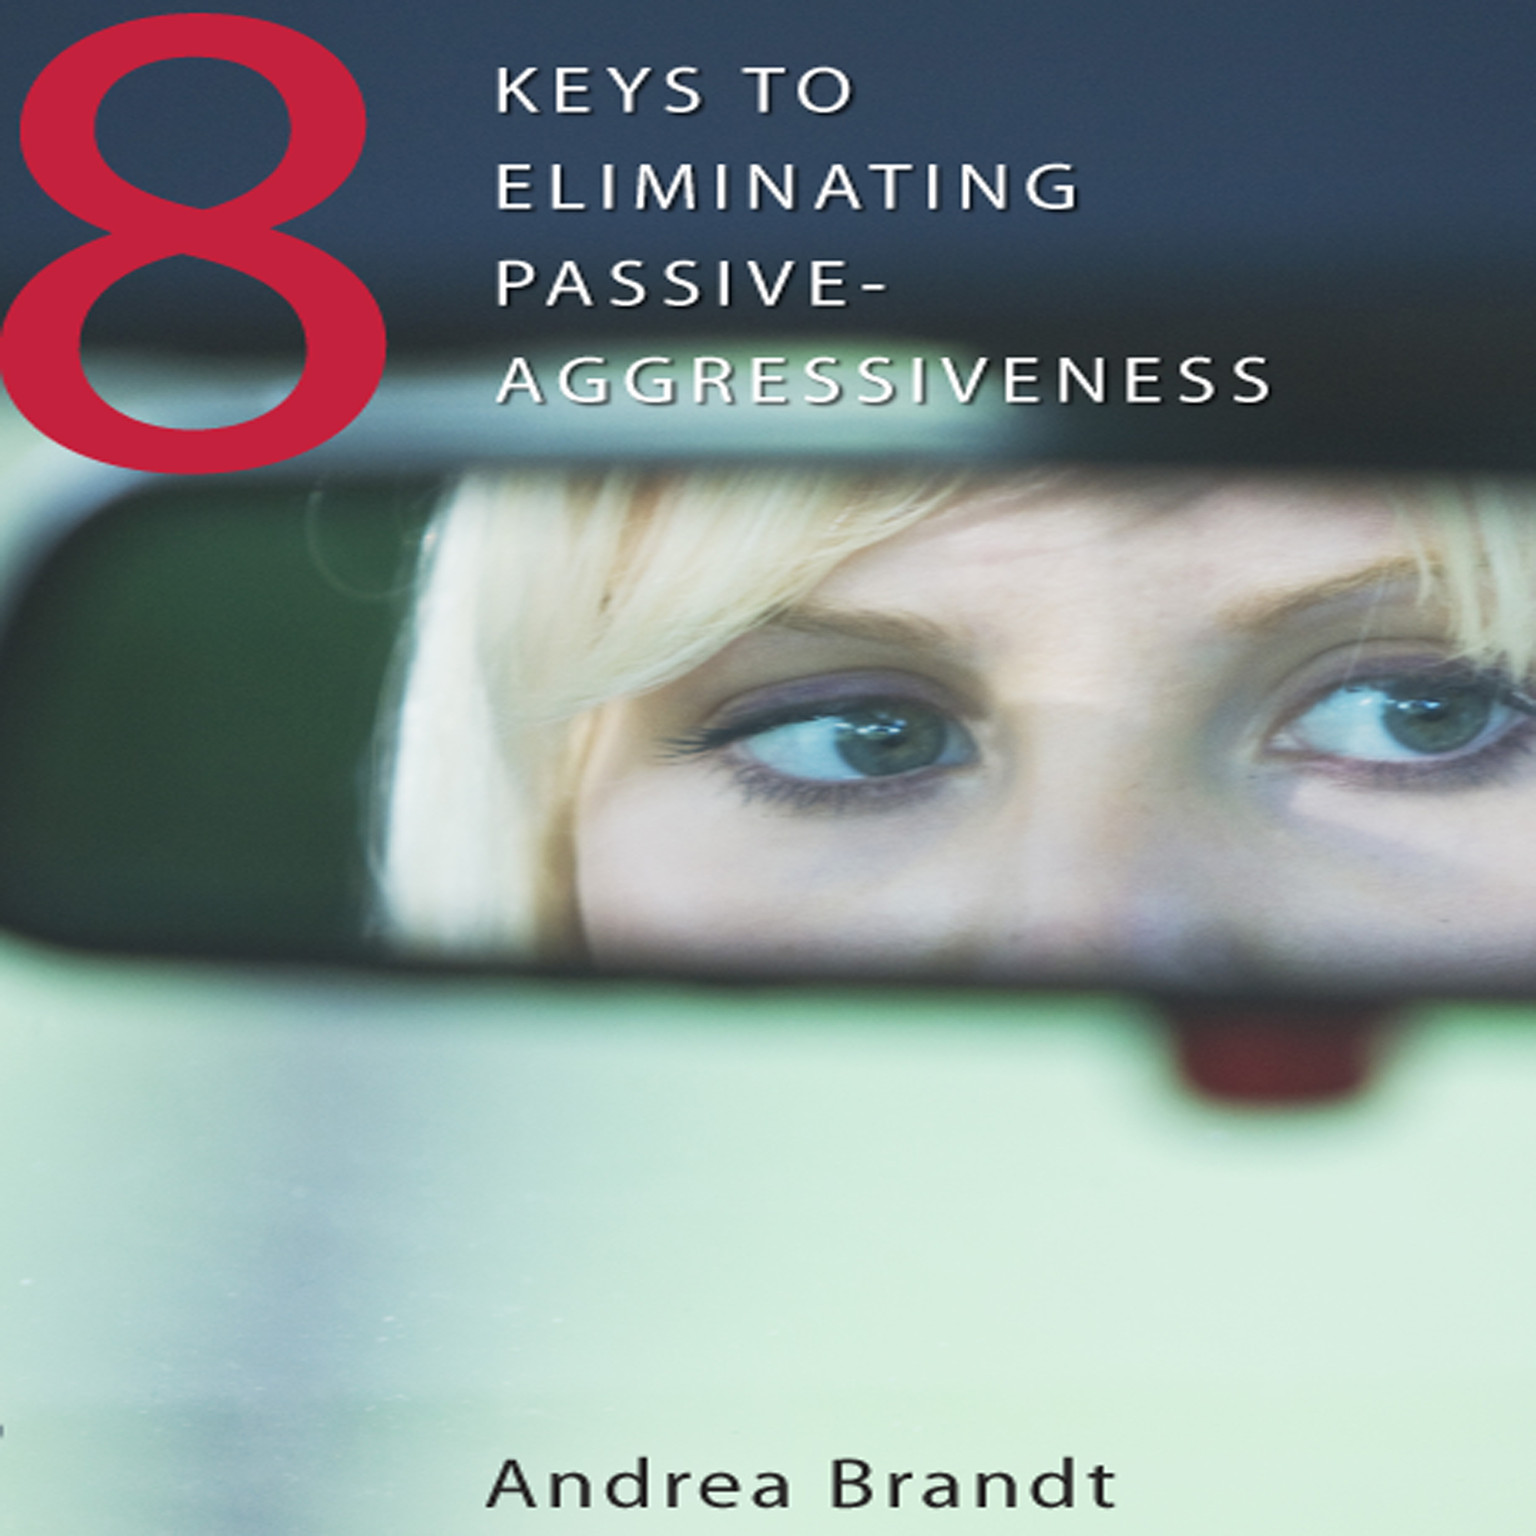 Printable 8 Keys to Eliminating Passive-Aggressiveness Audiobook Cover Art